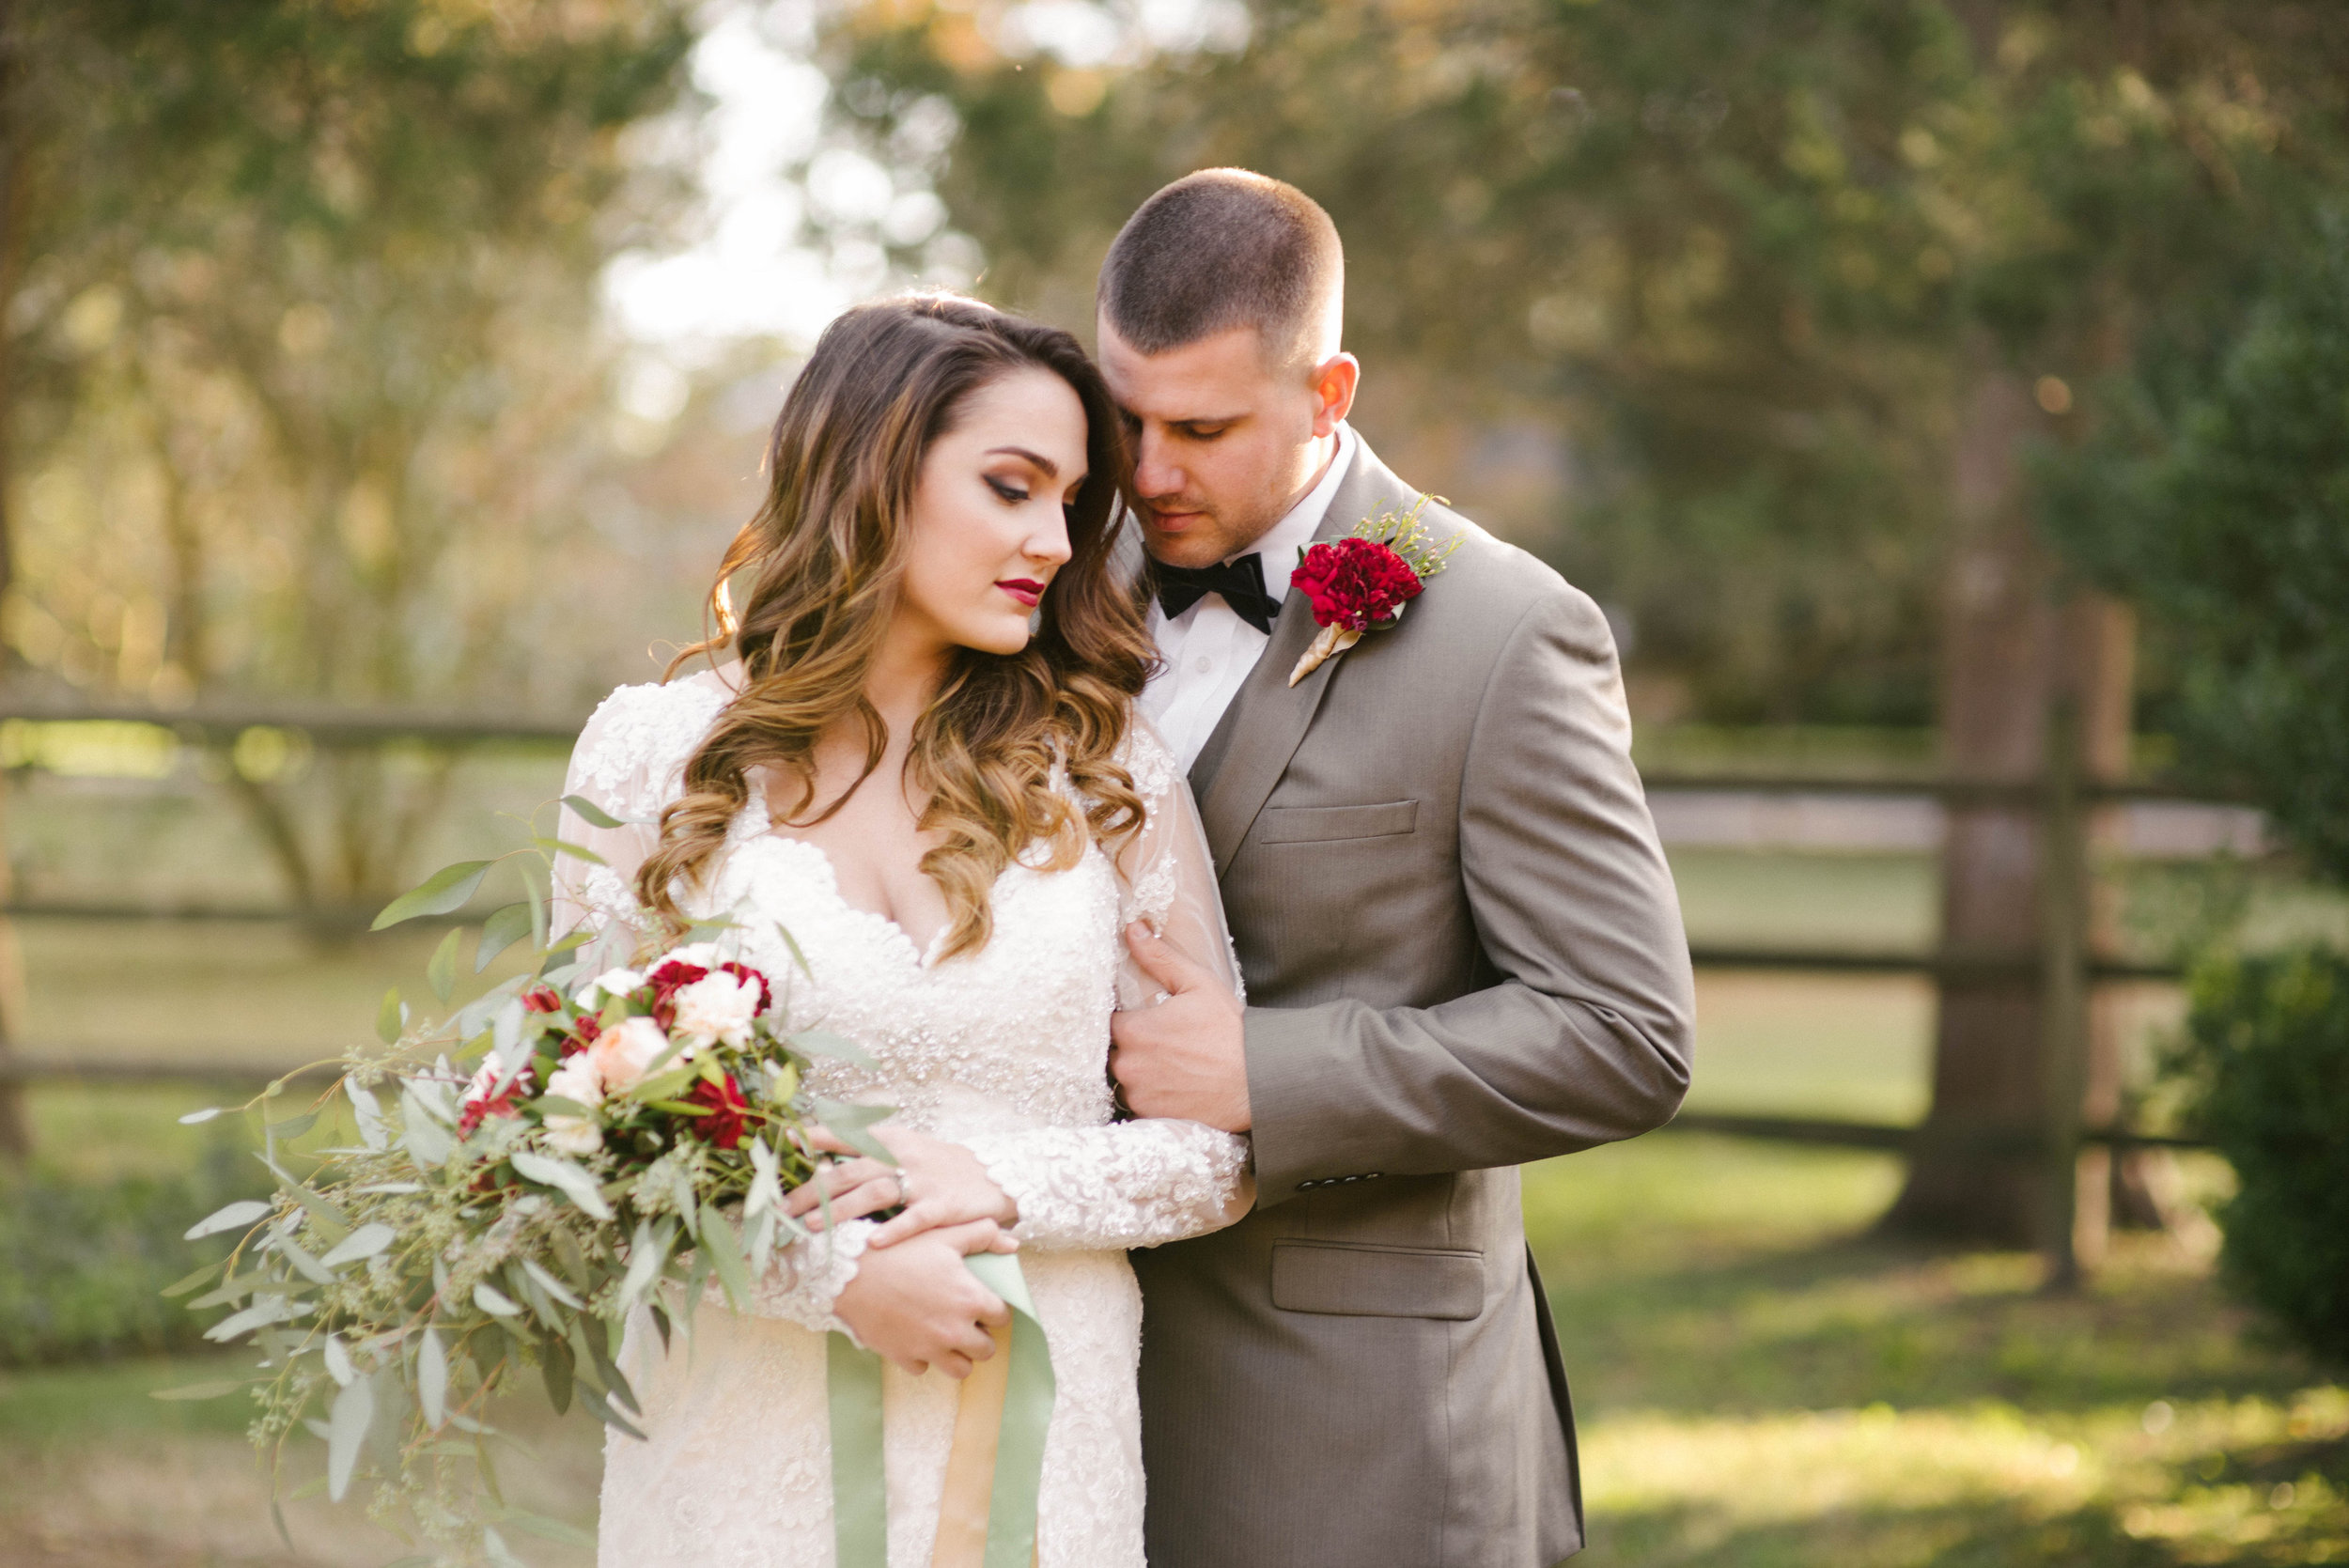 Raise The Ruth Events+Adam Thoroughgood House+Vintage Romantic Wedding